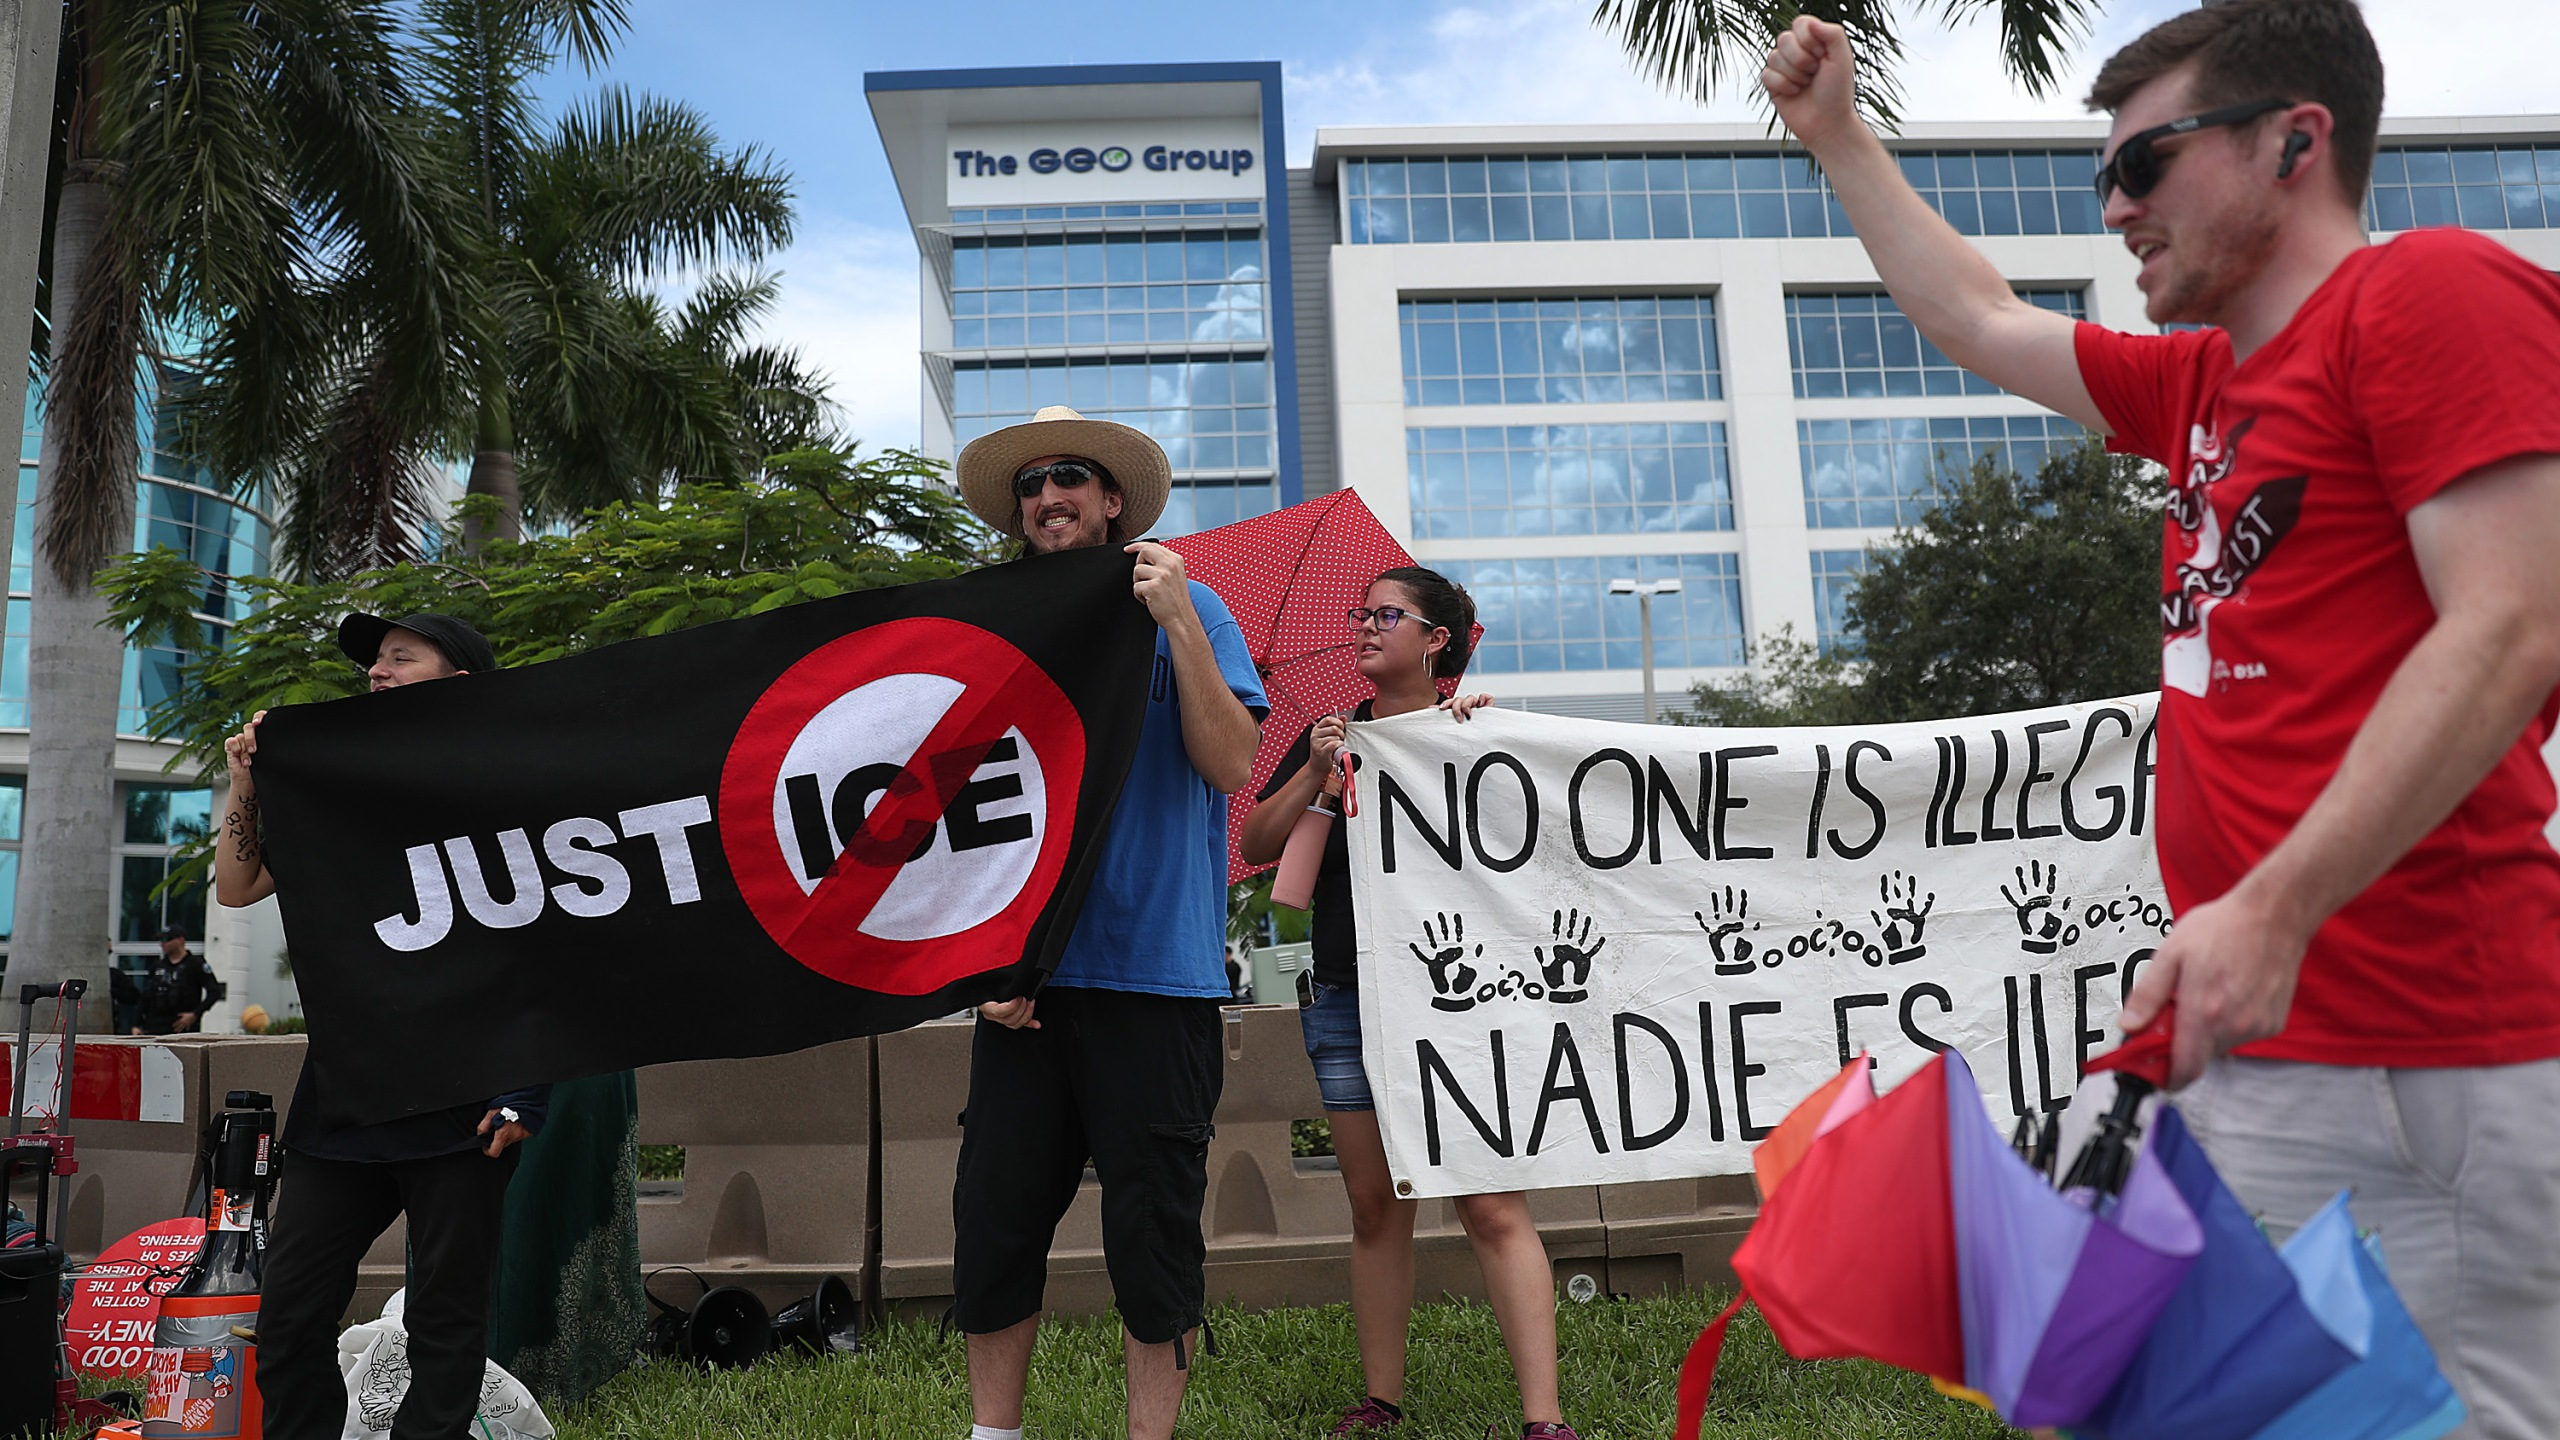 Activists and protesters including the group Never Again Action are seen as they protest outside the headquarters of the private prison company Geo Group on Aug. 12, 2019, in Boca Raton, Fla. (Credit: Joe Raedle/Getty Images)